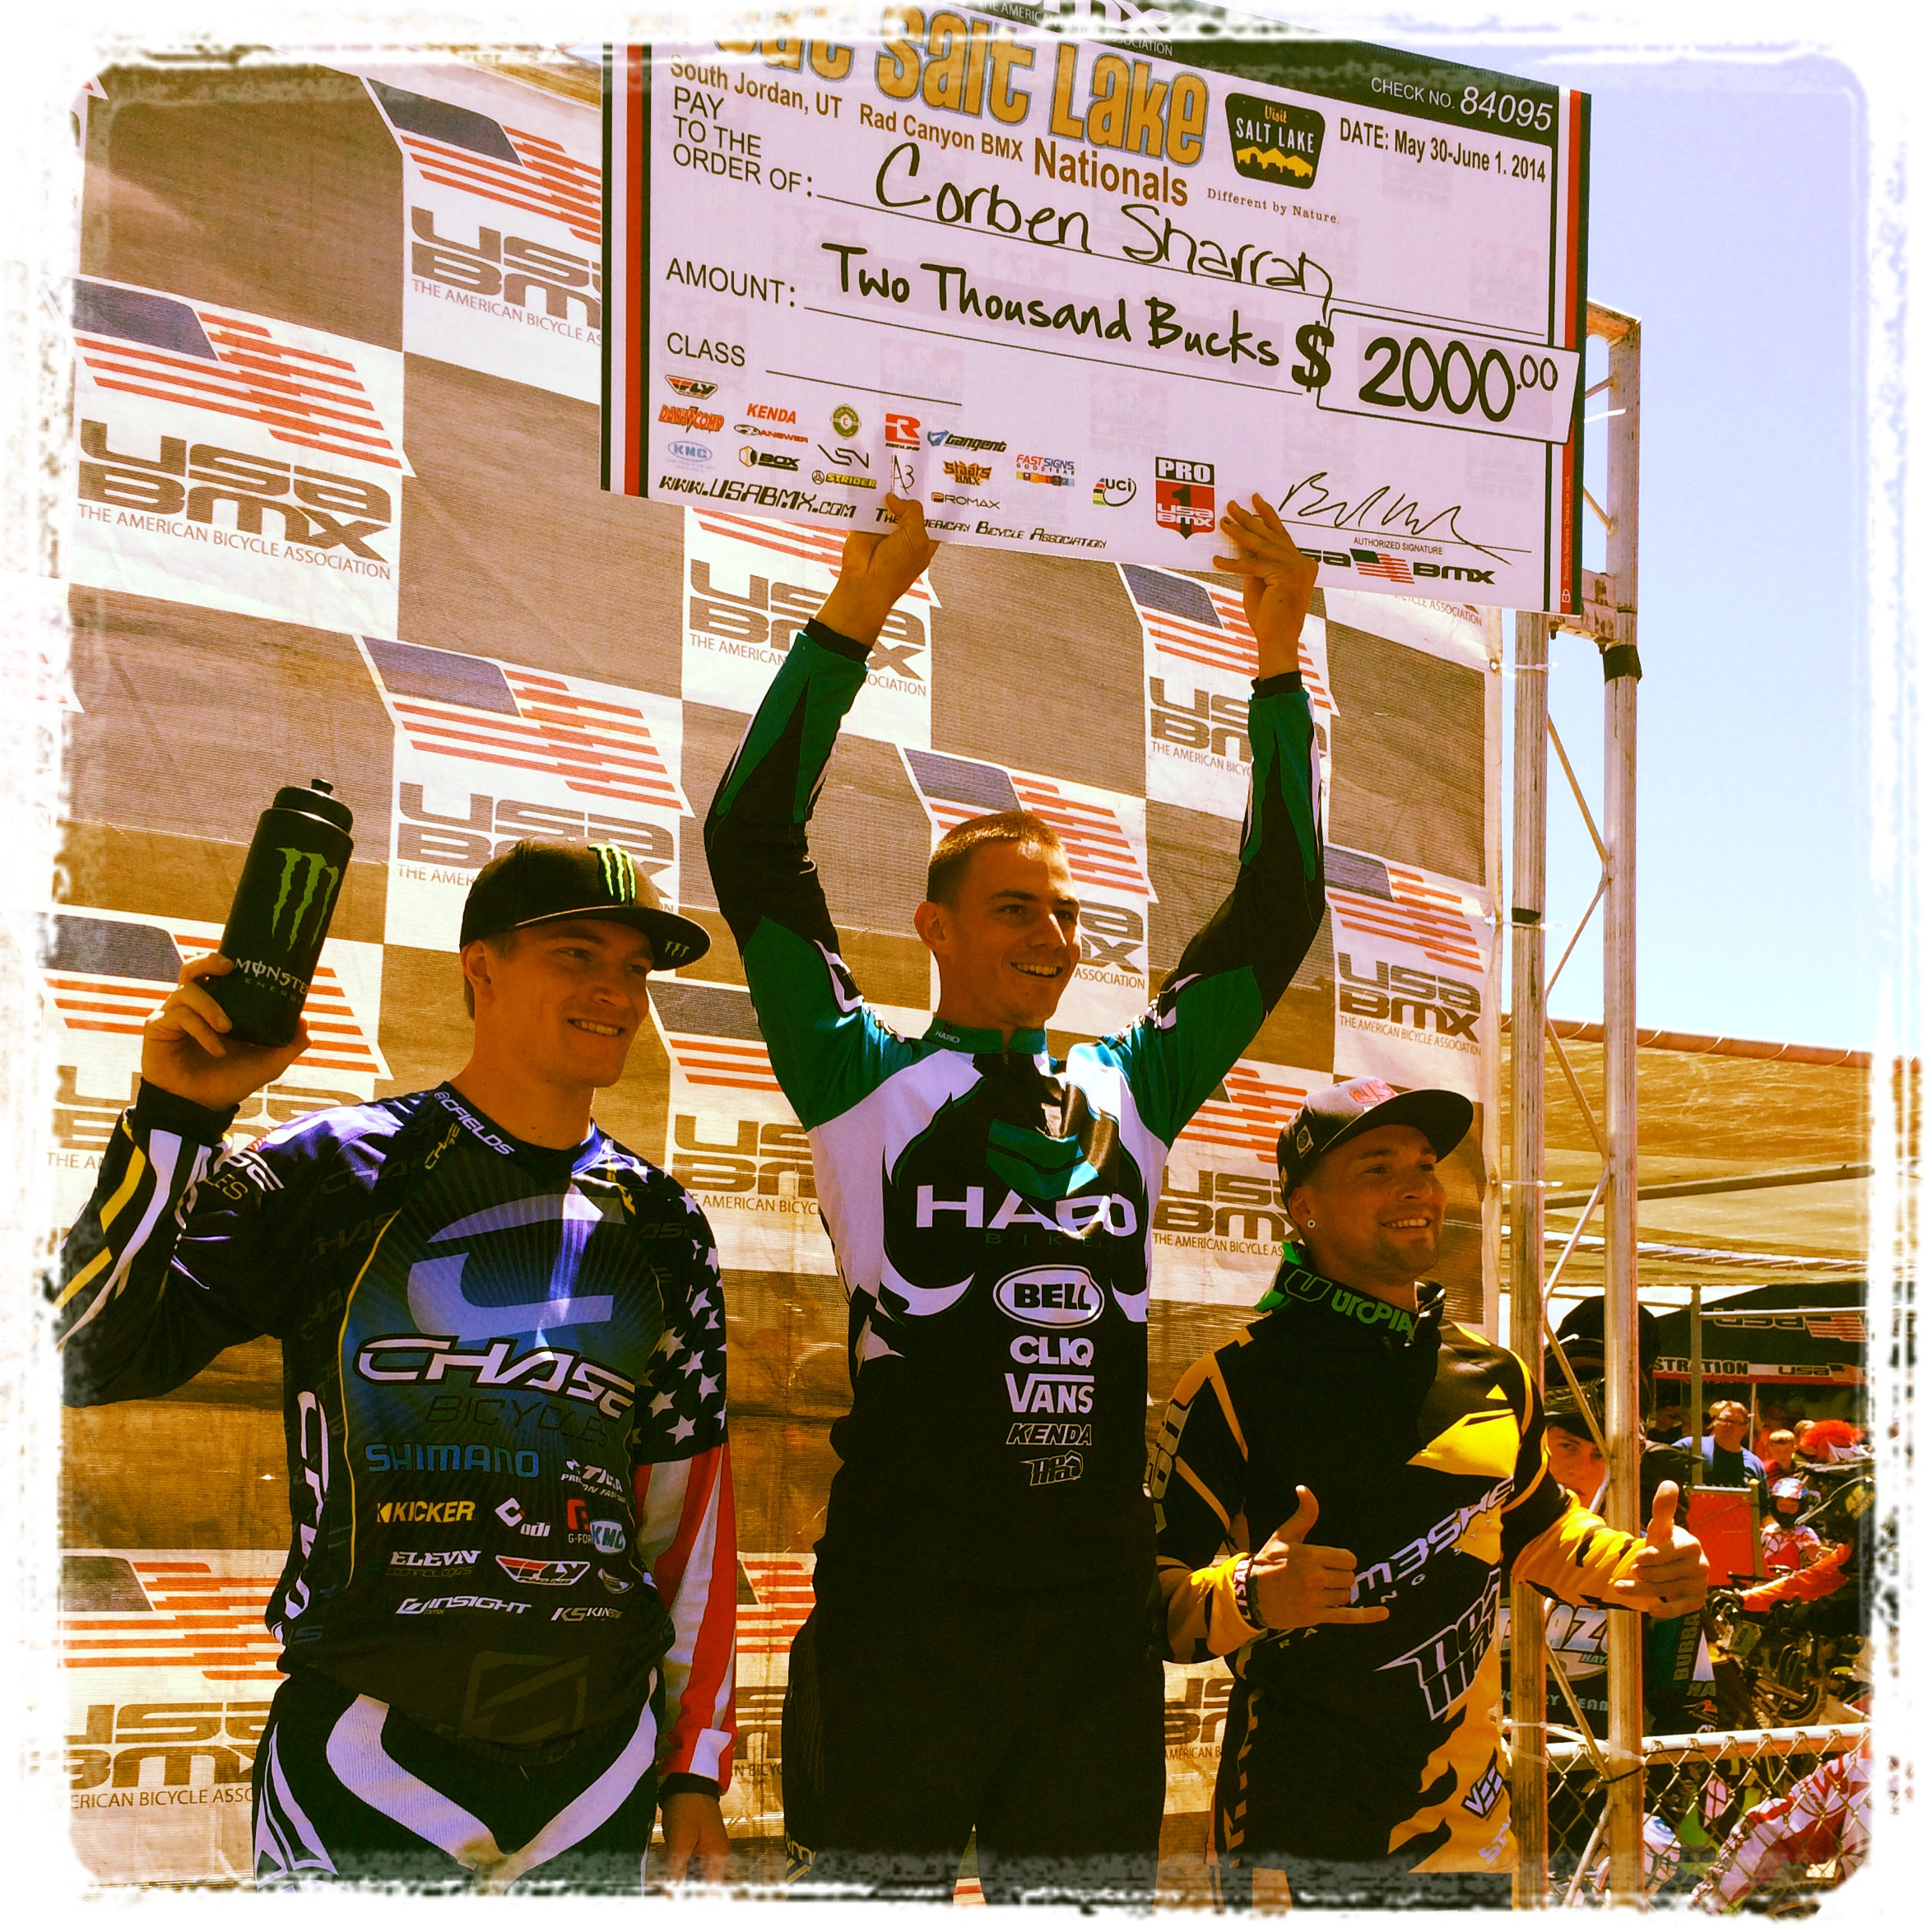 Connor Fields finishes 2nd on Day 2 of the USA BMX Great Salt lake City nationals